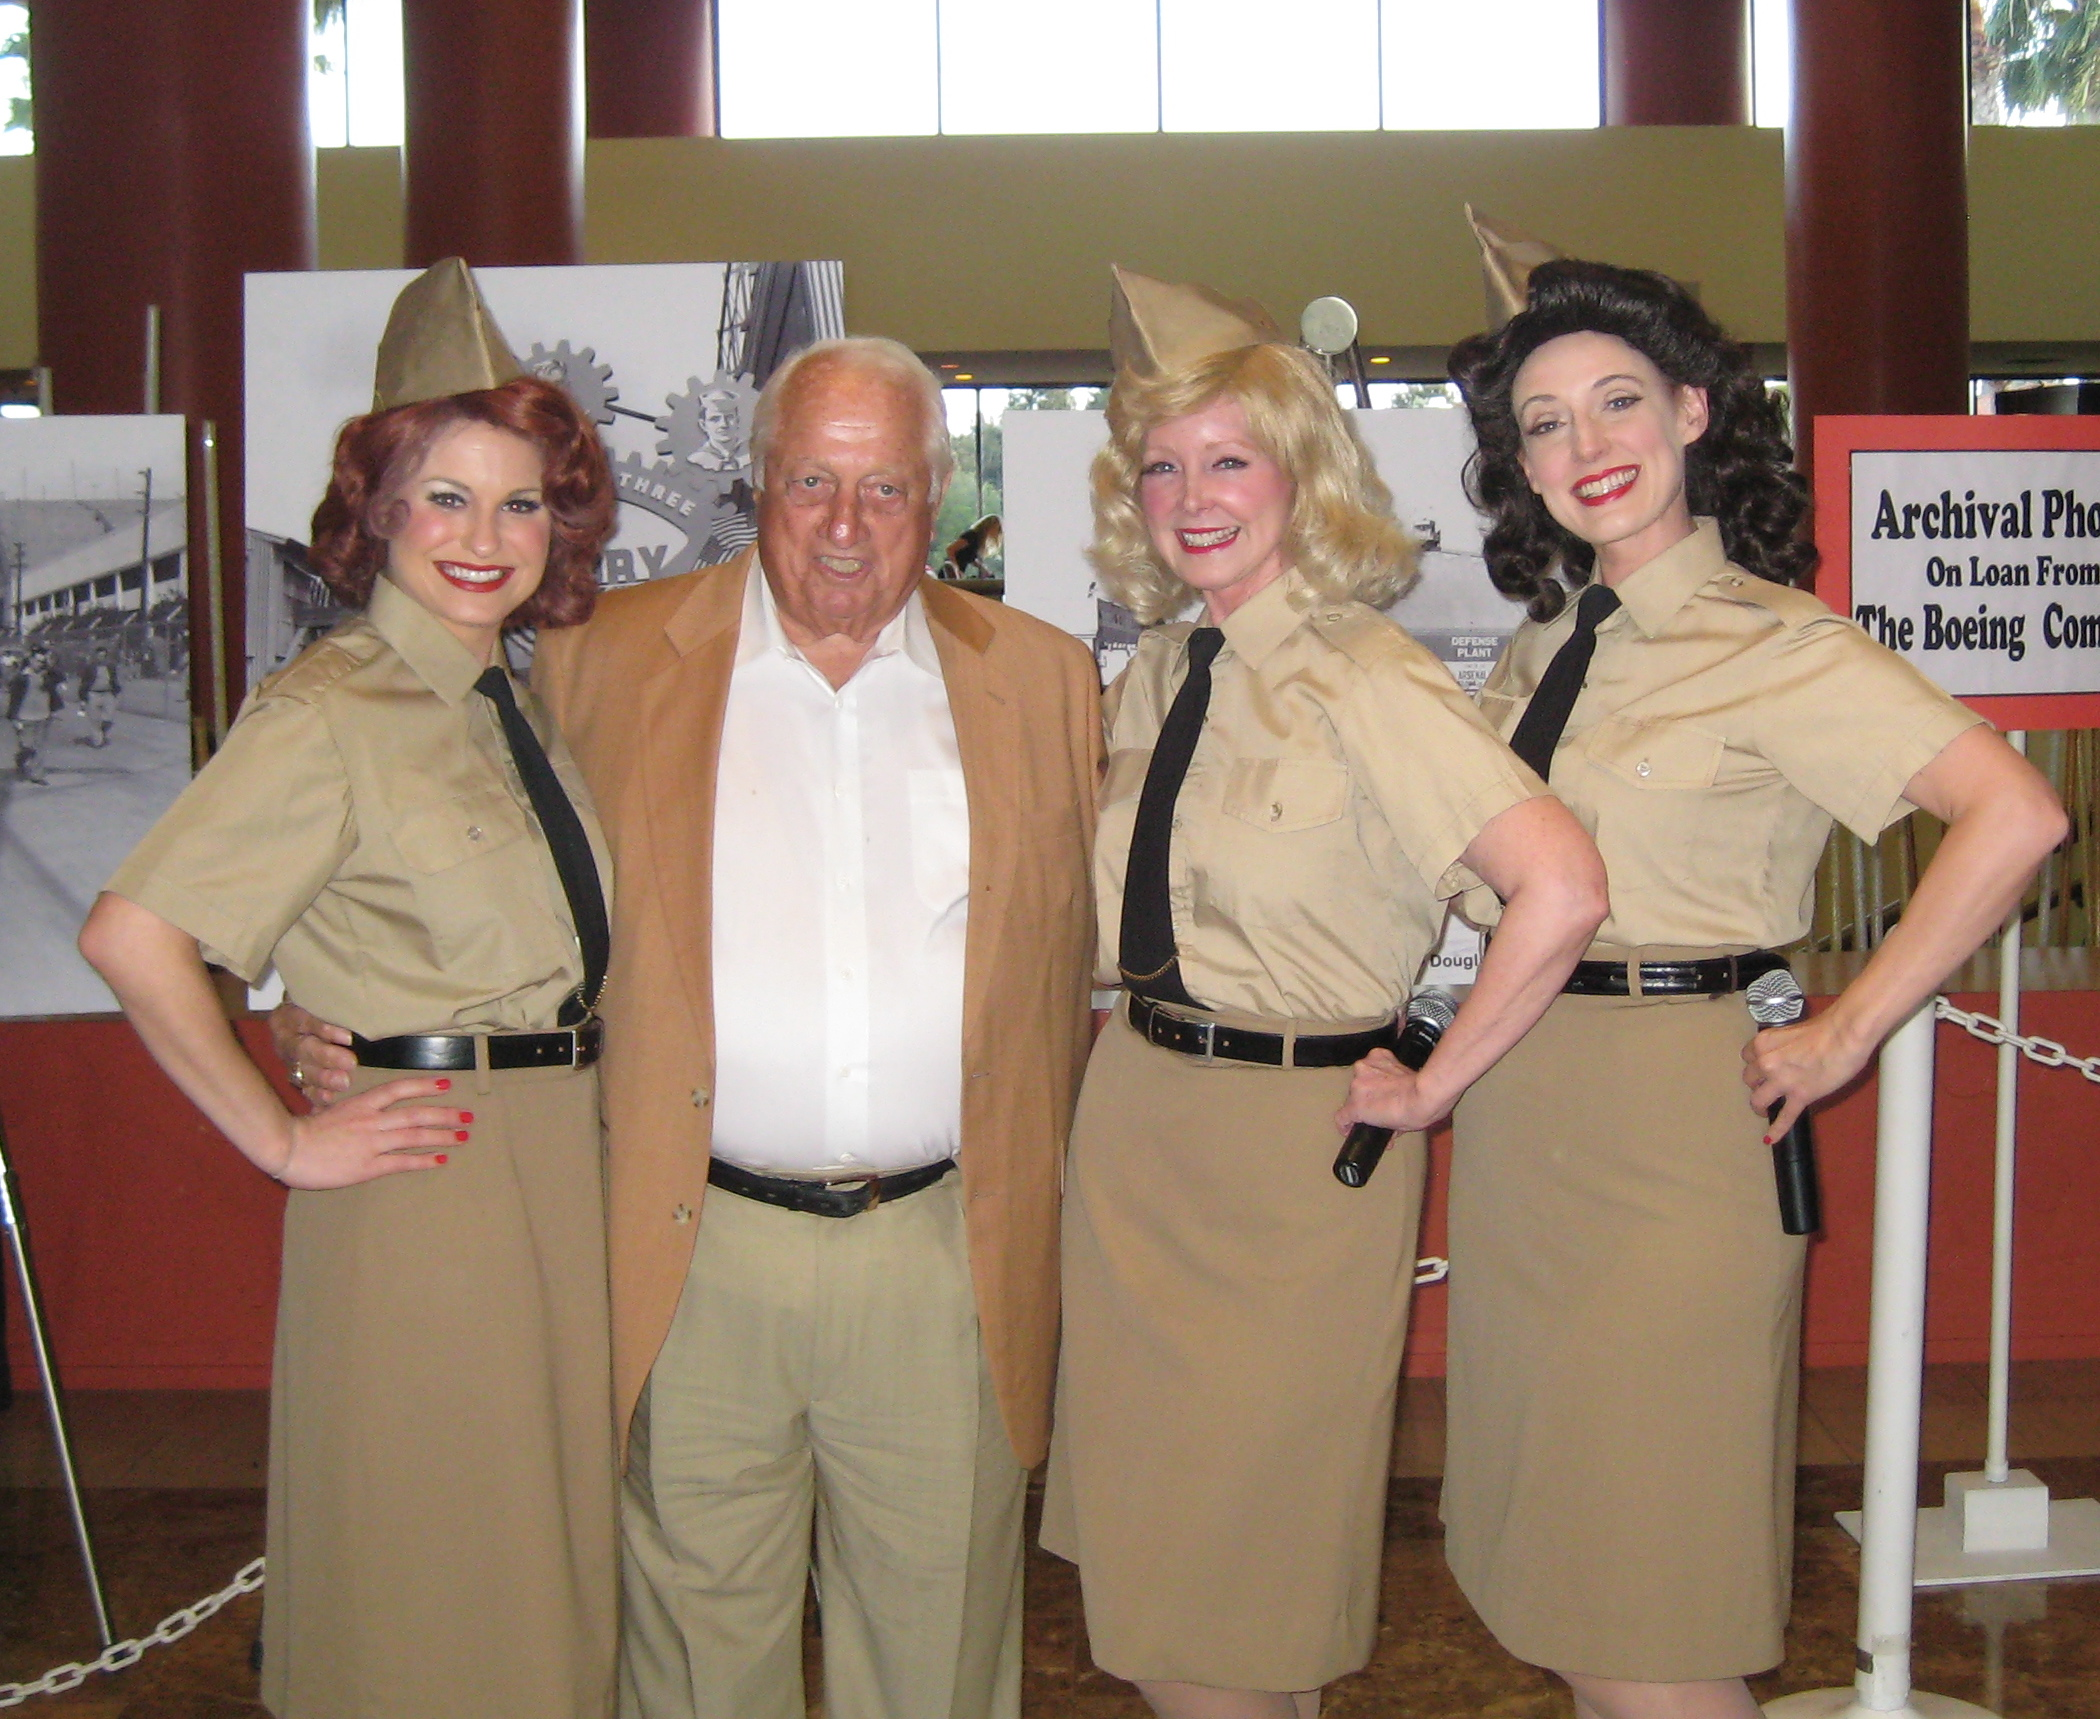 With Tommy Lasorda at a private event honoring Louis Zamperini